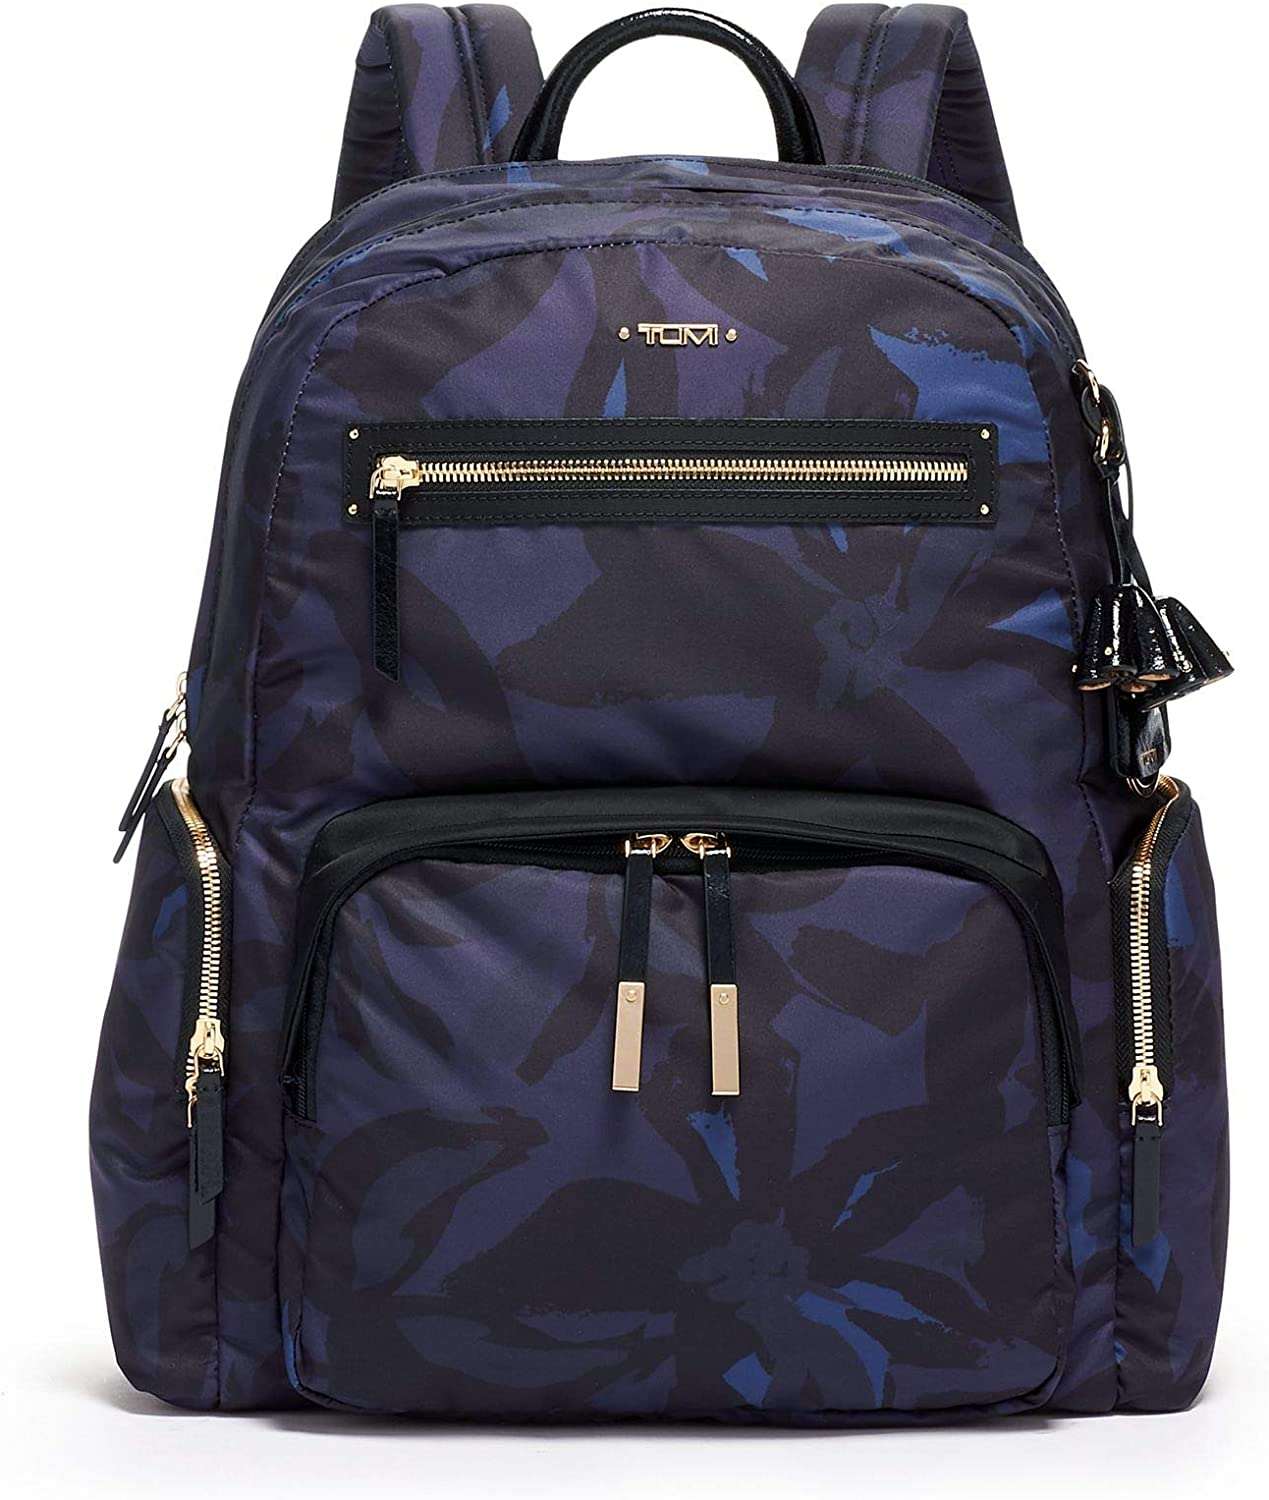 TUMI - Voyageur Carson Laptop Backpack - 15 Inch Computer Bag for Women